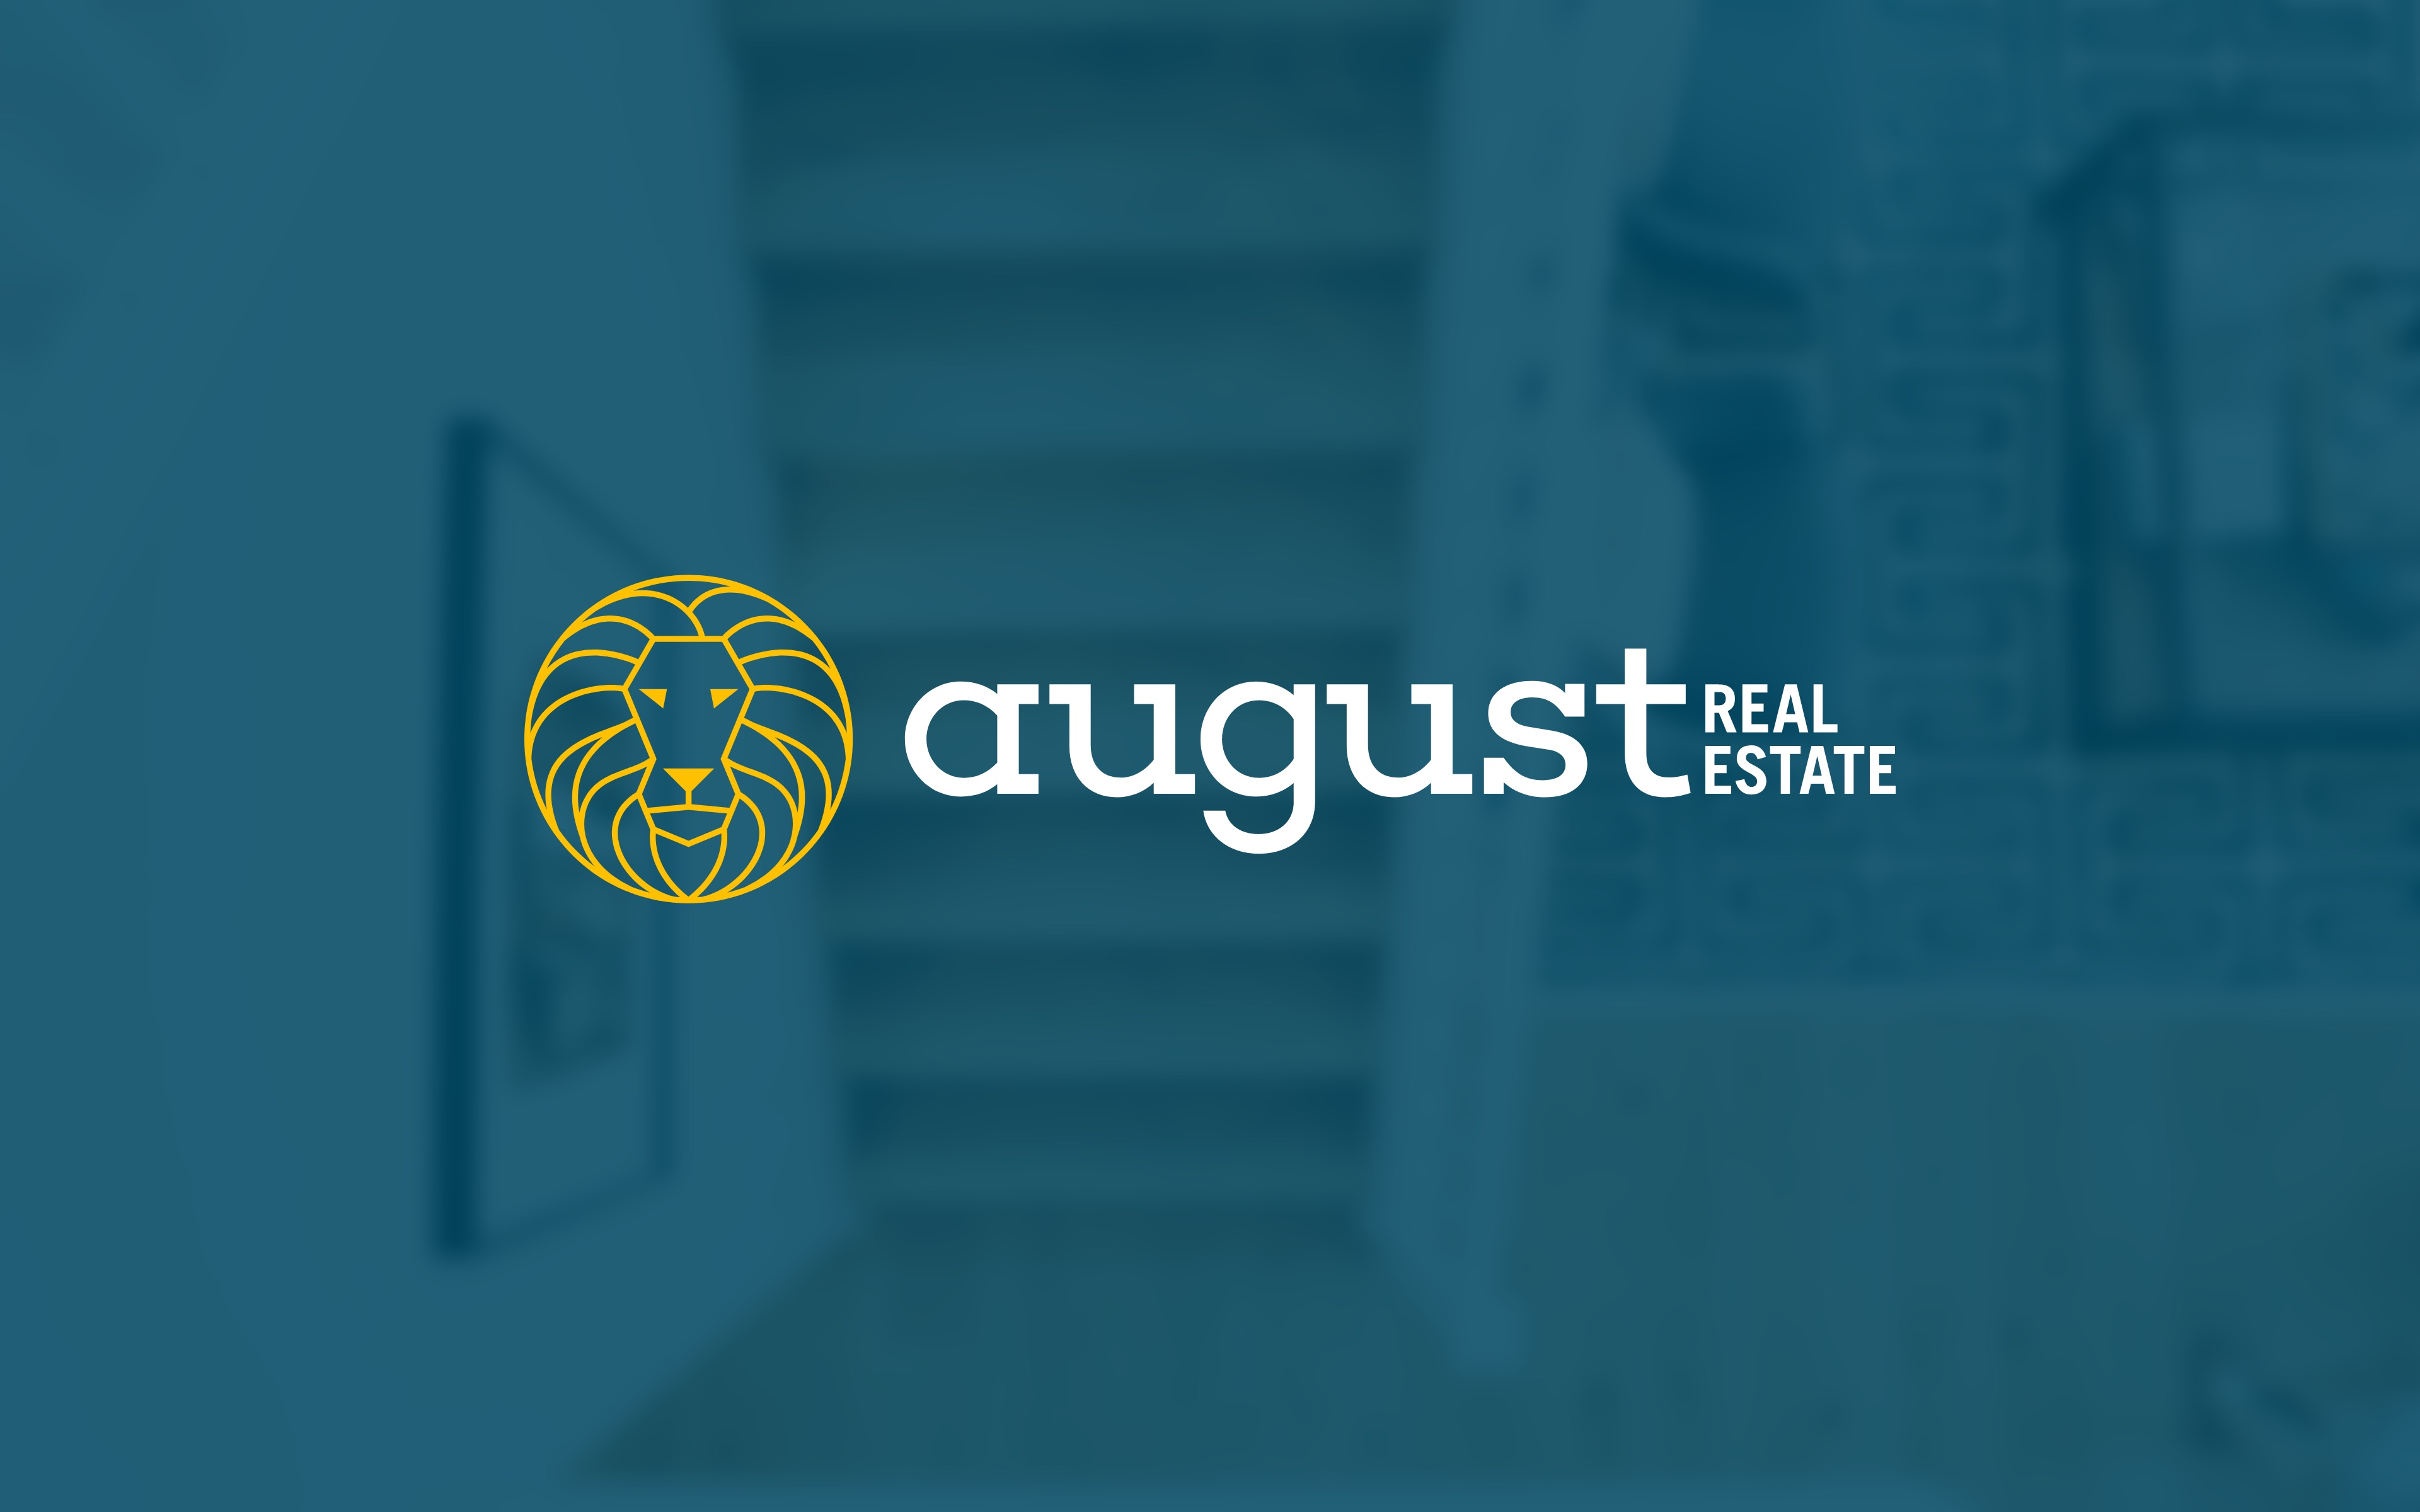 August Real Estate logo on top of a blue overlay aerial view of a modern interior living room